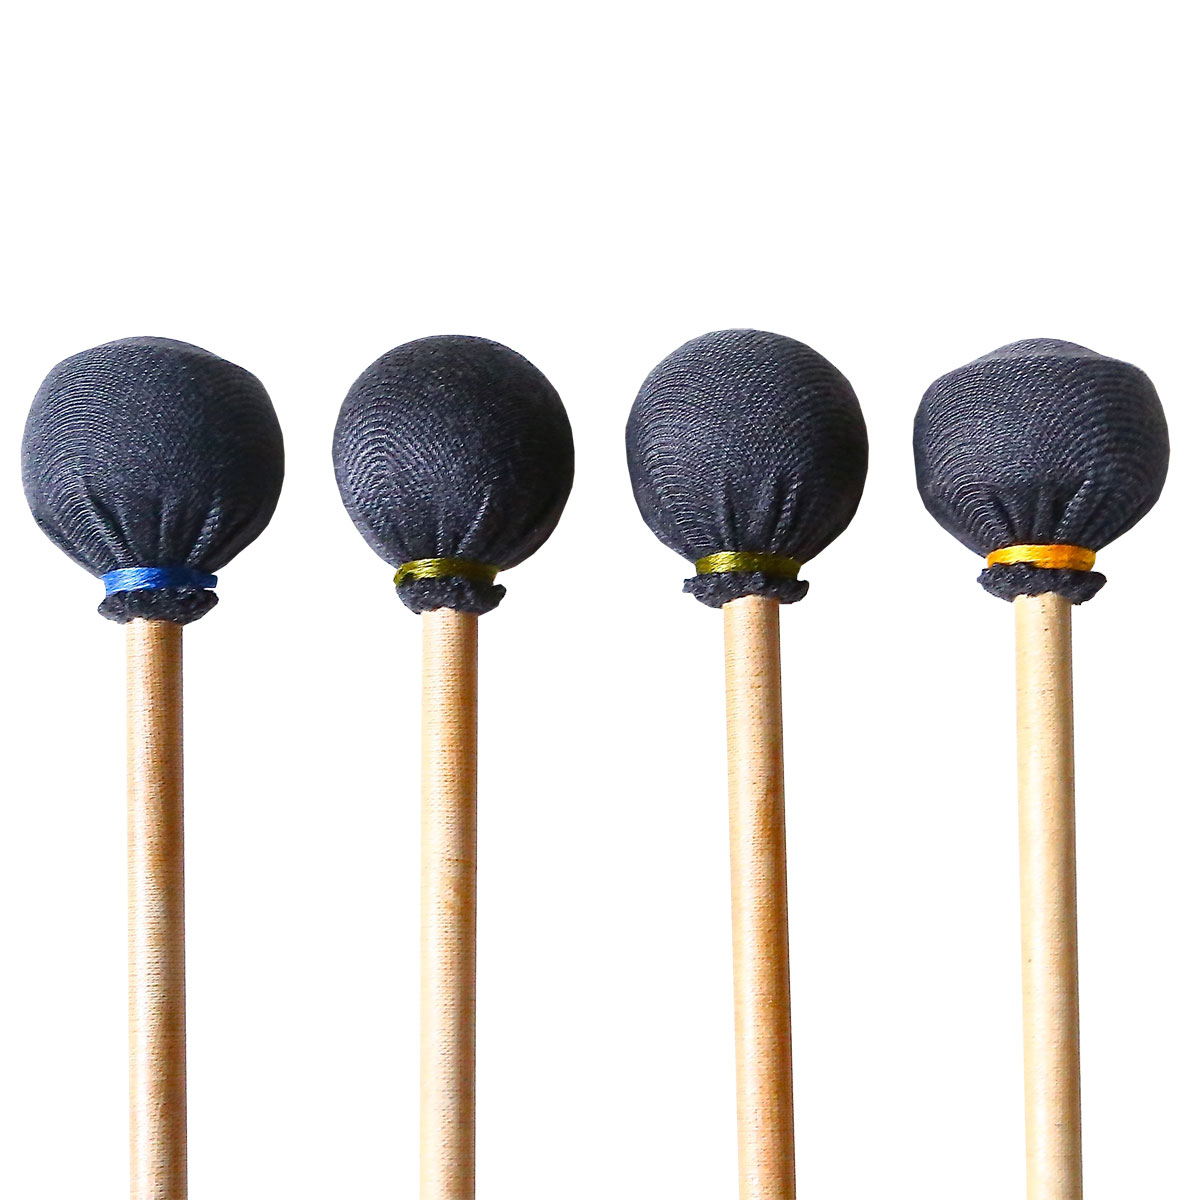 Dragonfly Percussion Custom Graduated Marimba Mallet Set with Rattan Handles (Specify Which Model)